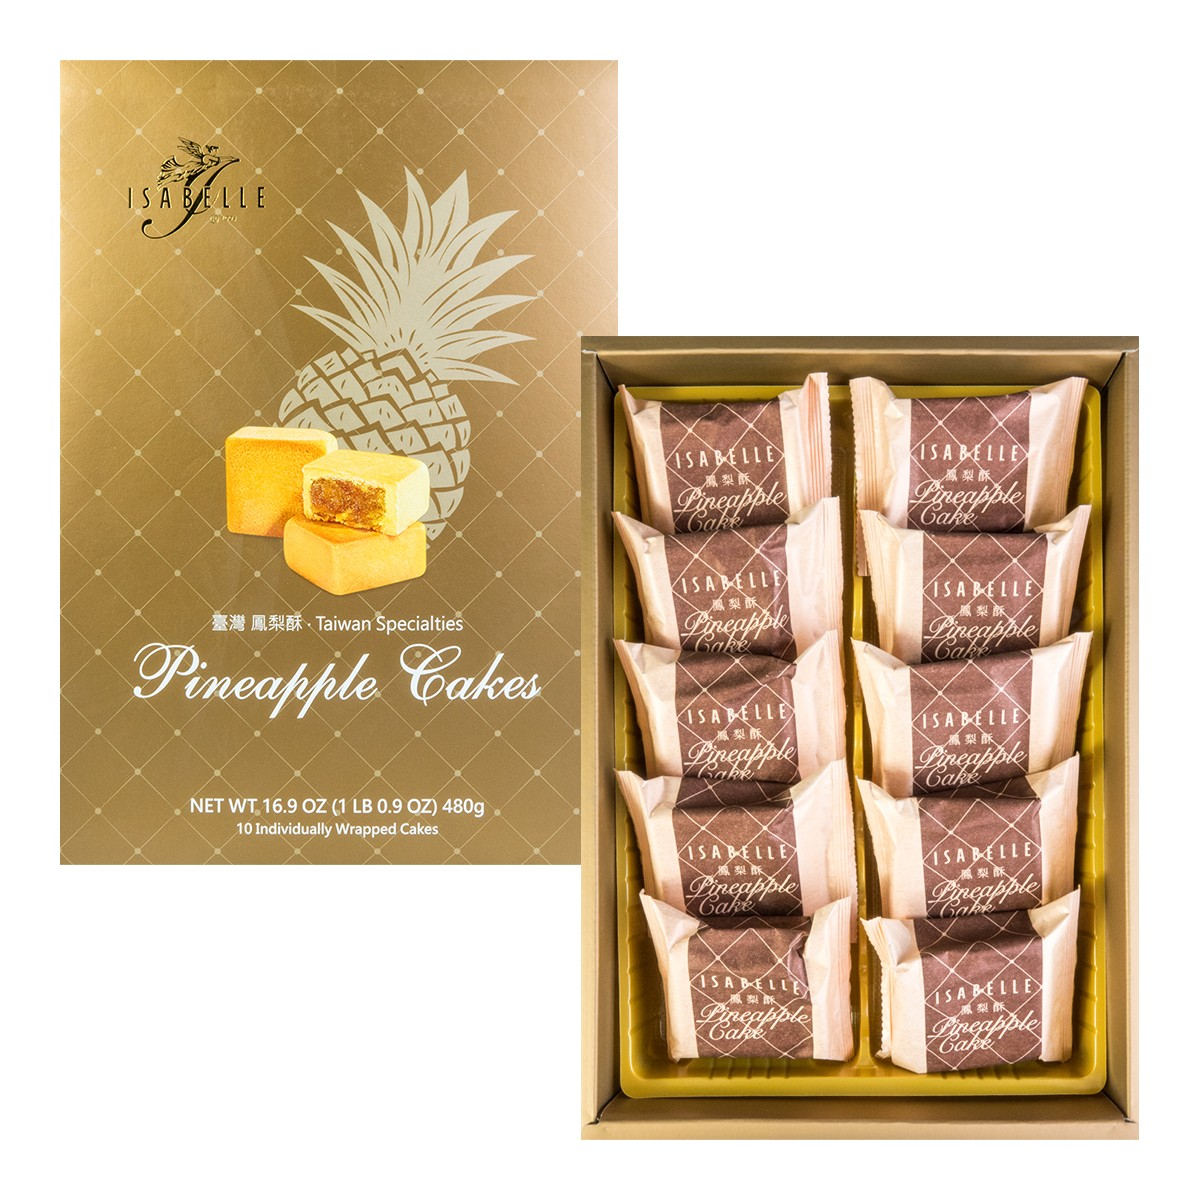 ISABELLE Taiwan Specialties Pineapple Cakes 480g